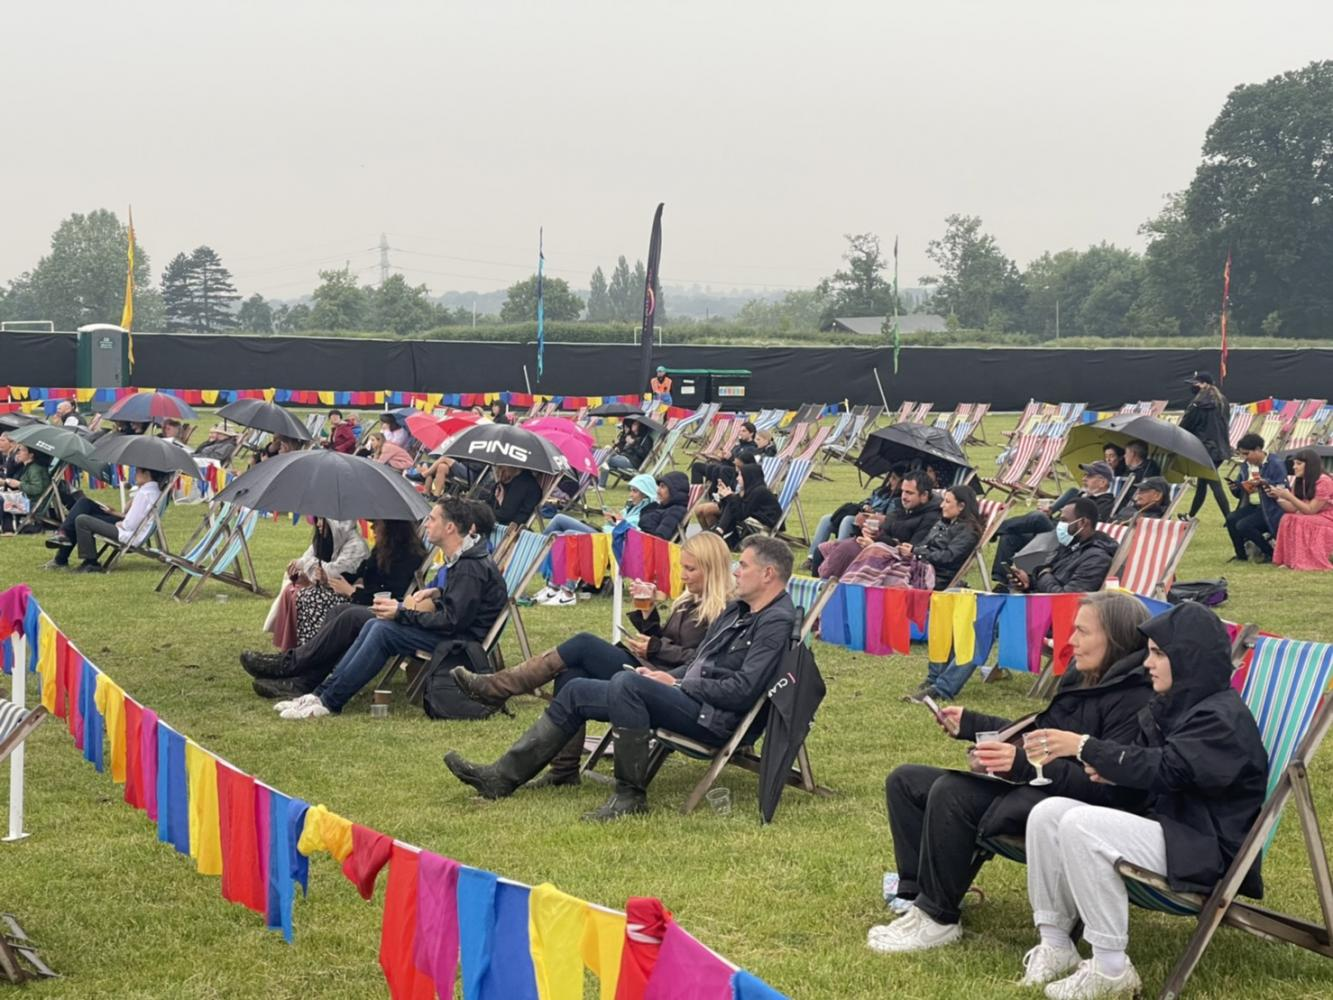 The Alfresco Theatre in partnership with the Tourism Authority of Thailand's London office hosted an Alfresco